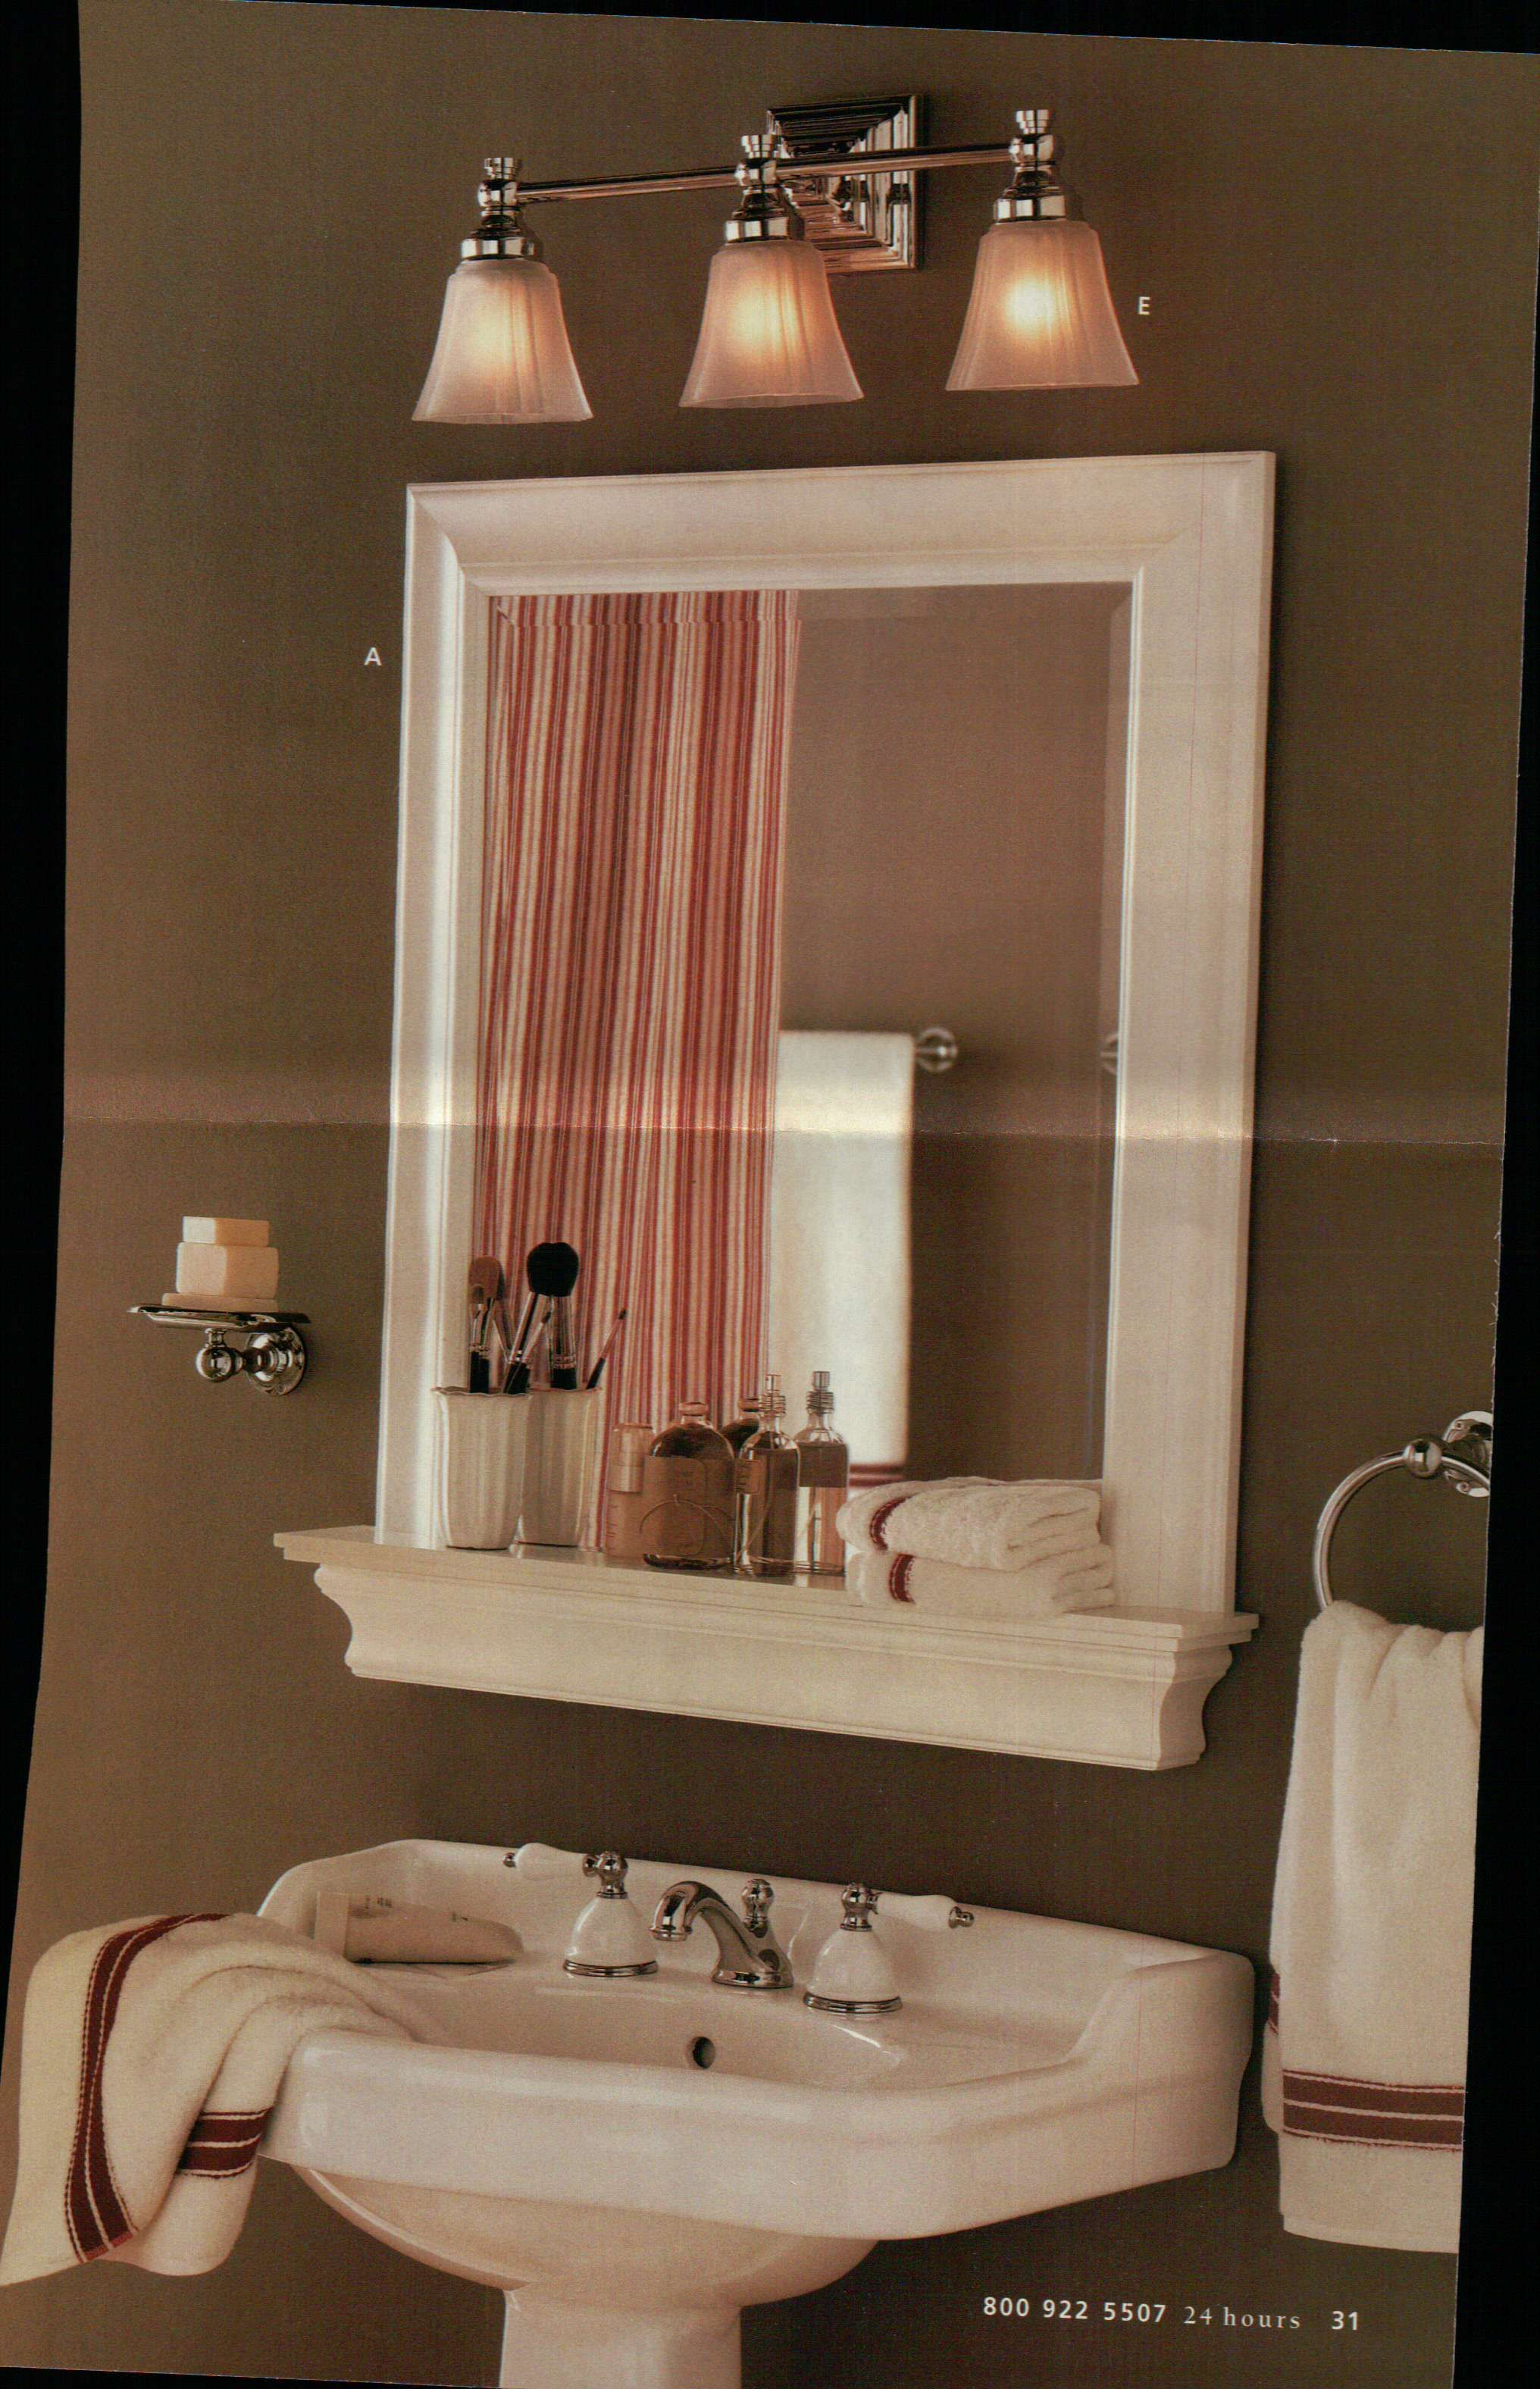 Framed Bathroom Mirror And Shelf But With A Hole In The